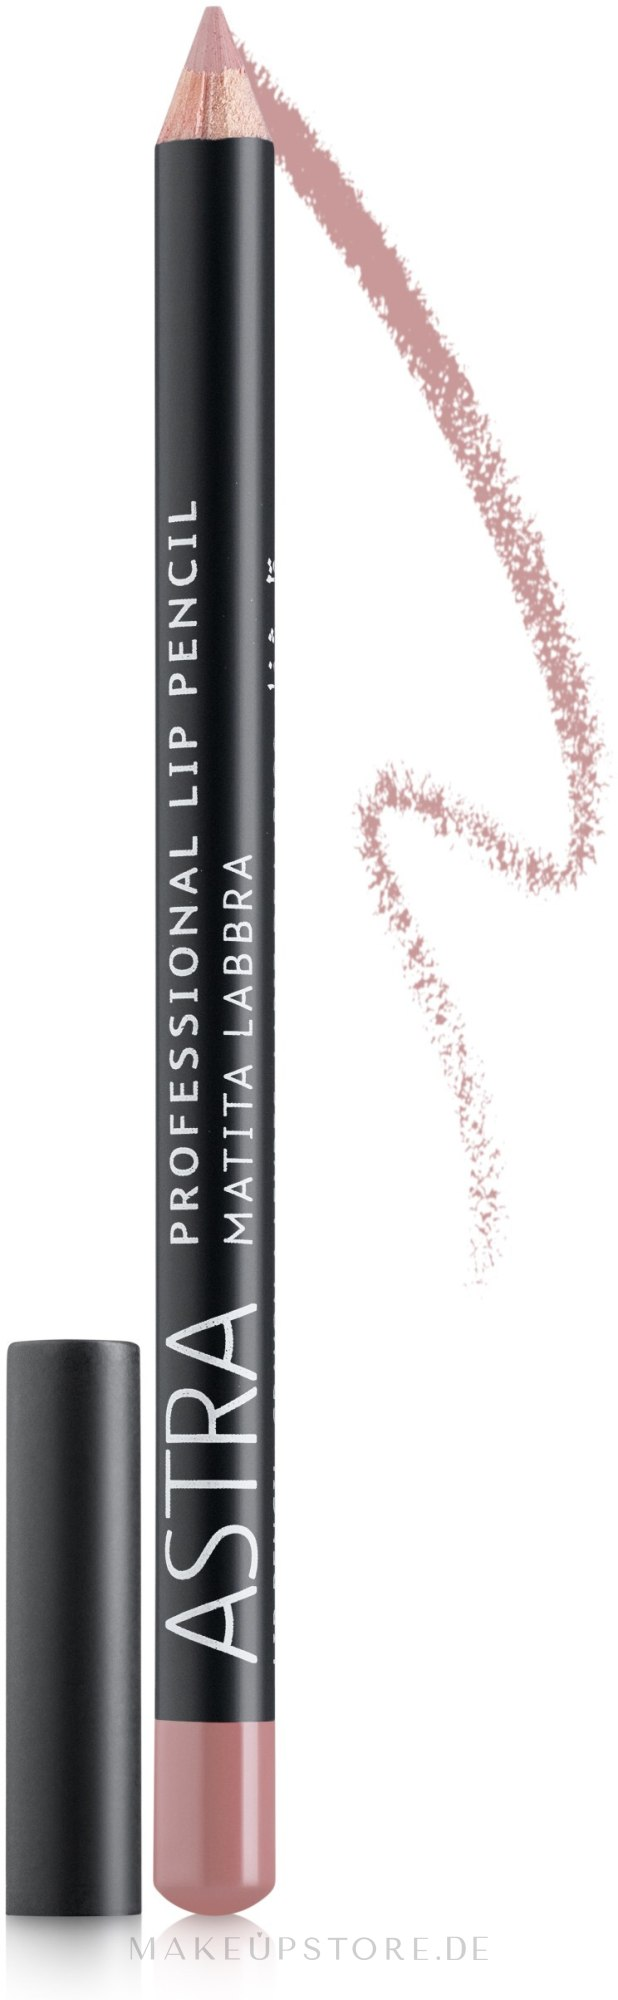 Lippenkonturenstift - Astra Make-Up Professional Lip Pencil — Bild 33 - Pink Lips